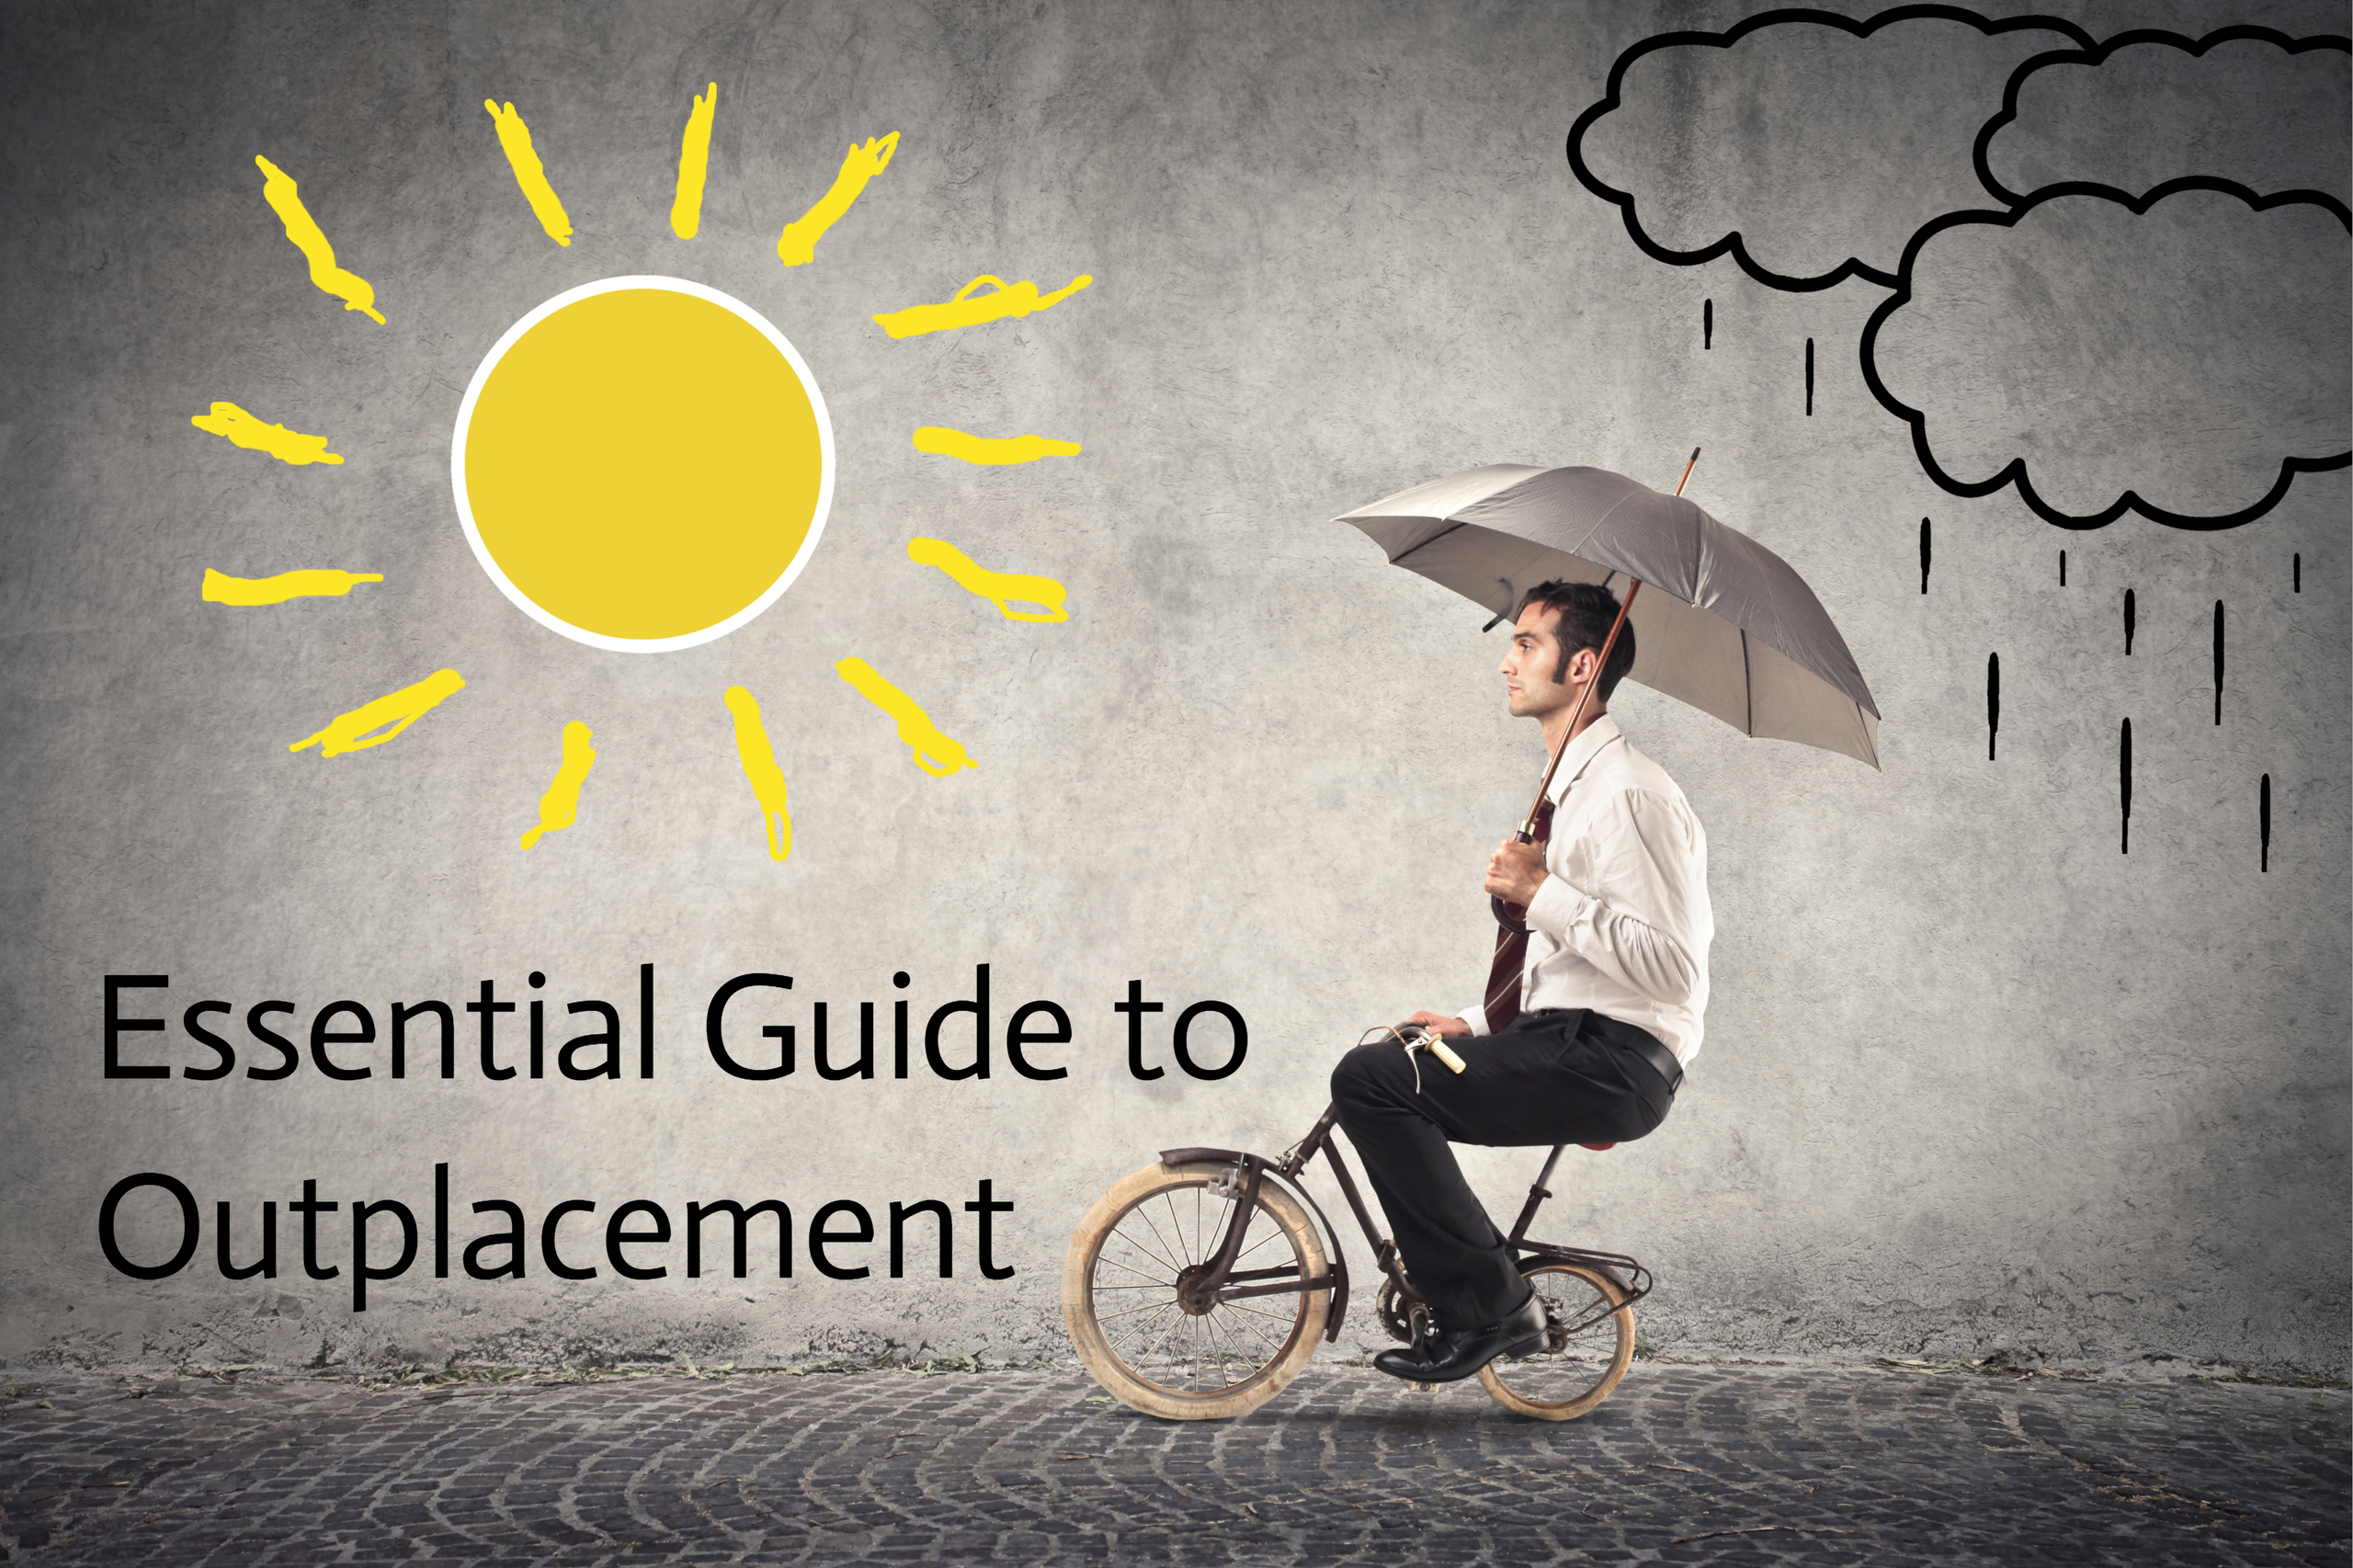 Essential Guide to Outplacement